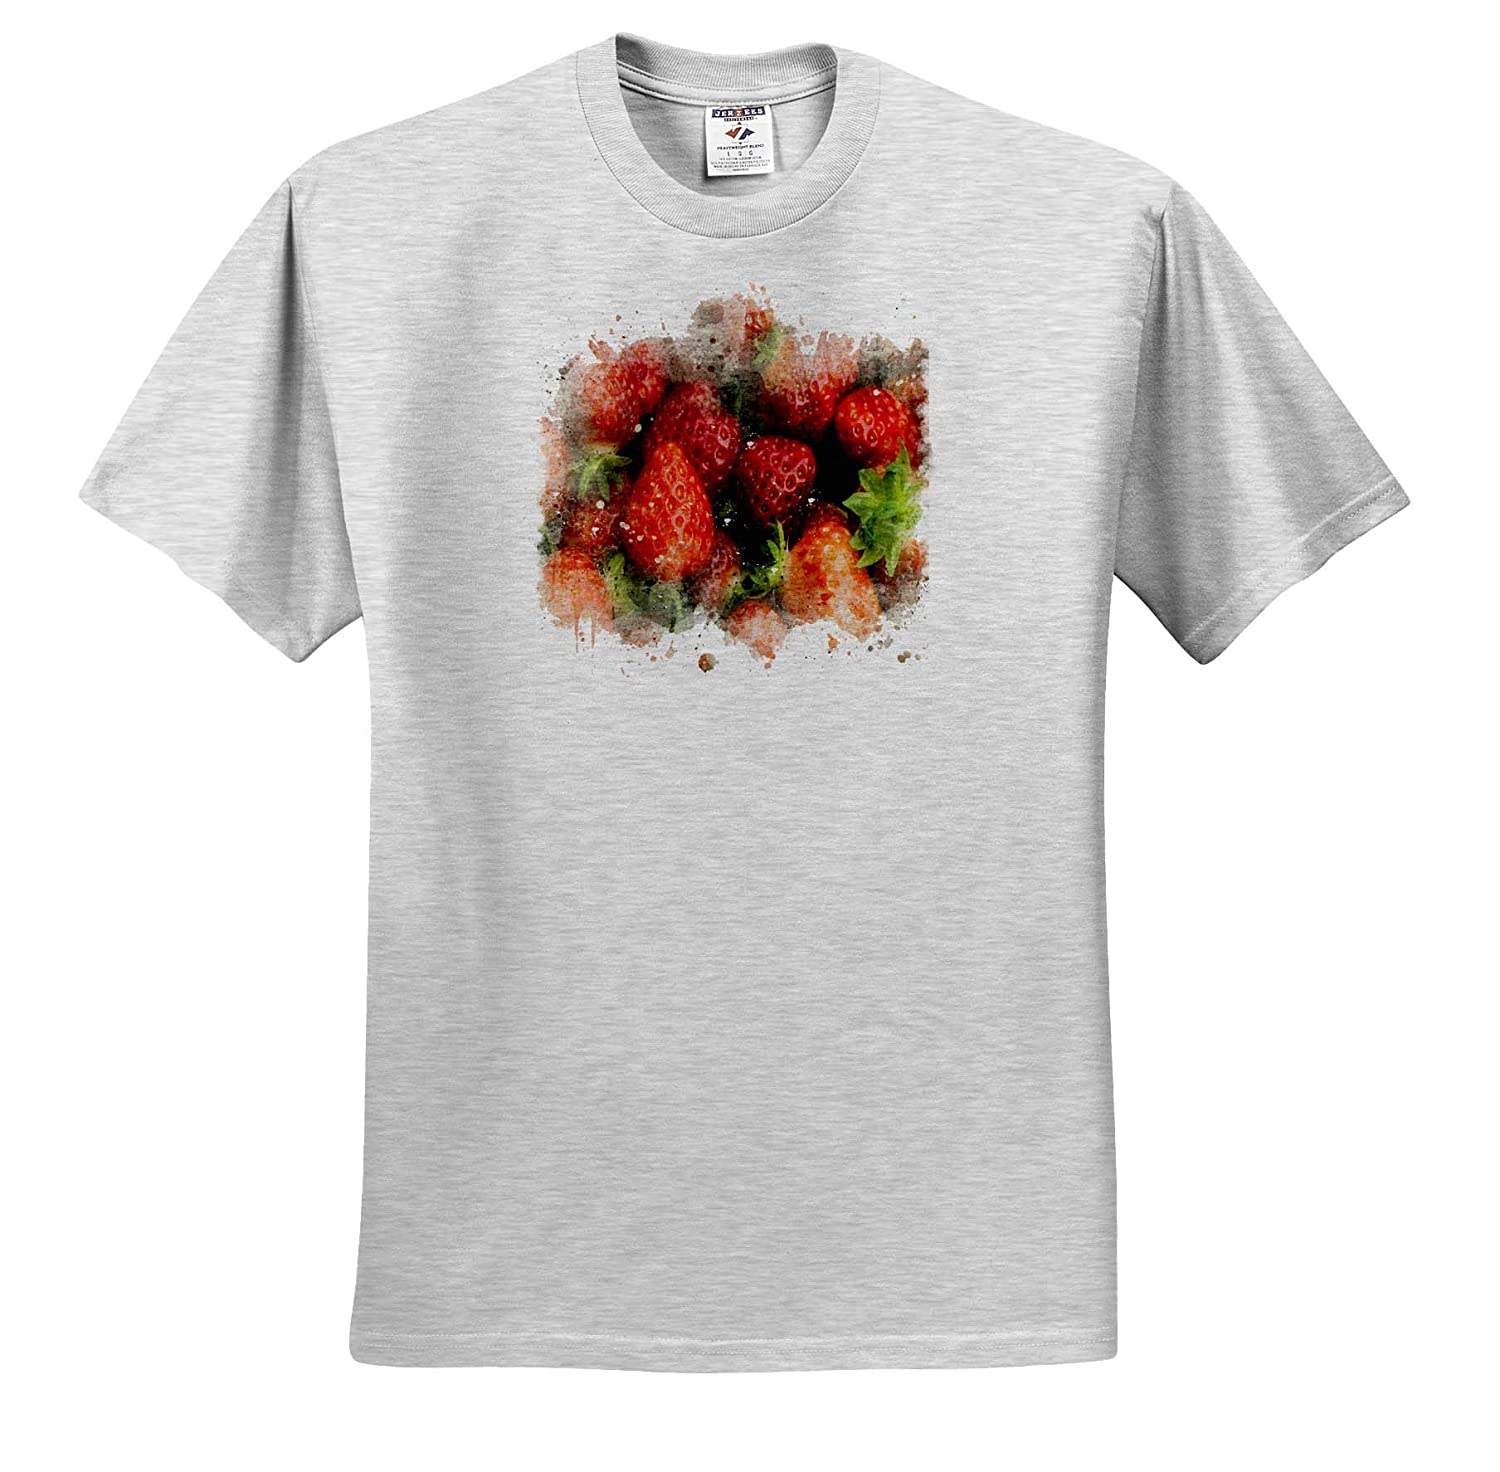 Adult T-Shirt XL 3dRose Anne Marie Baugh Image of Watercolor Strawberry Art Impressionist Mixed Media Art ts/_318643